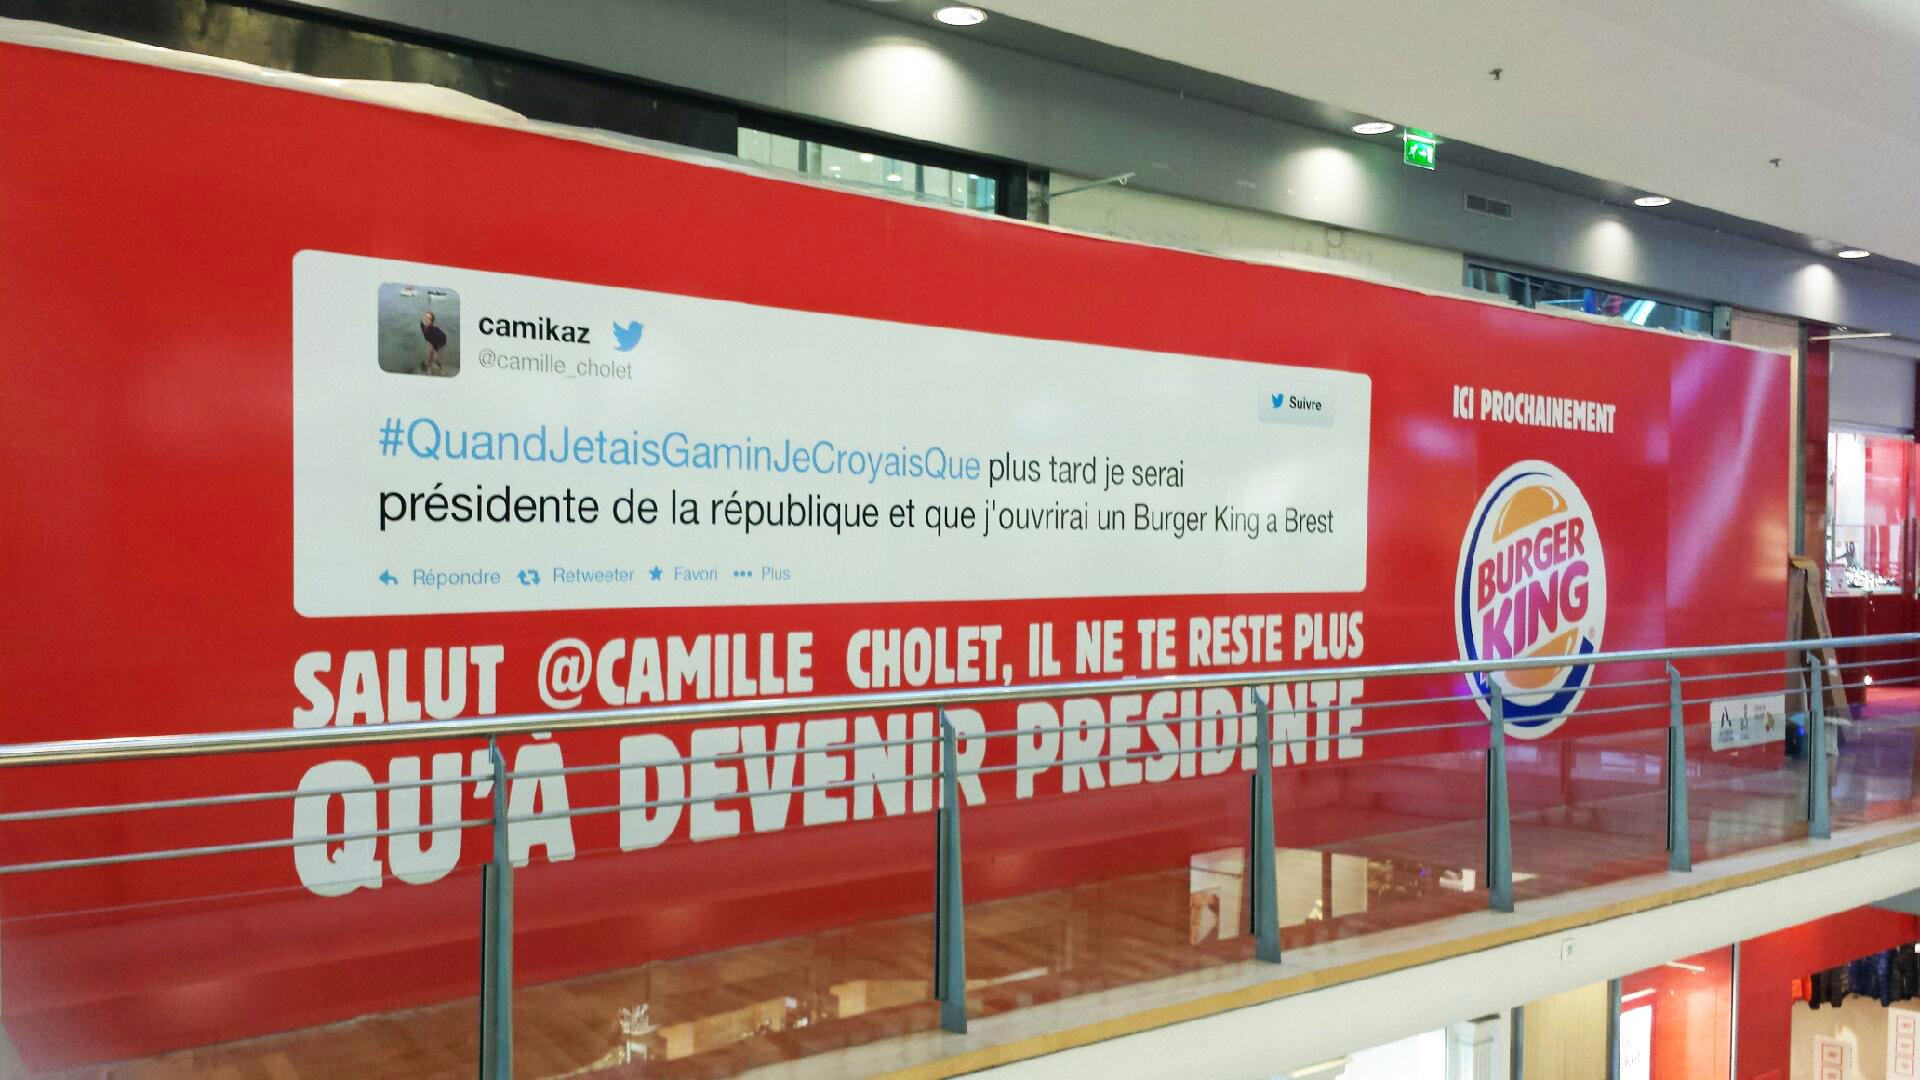 burger king france on twitter   u0026quot promis  camille cholet  on votera pour toi       t co  oya7by9npm u0026quot